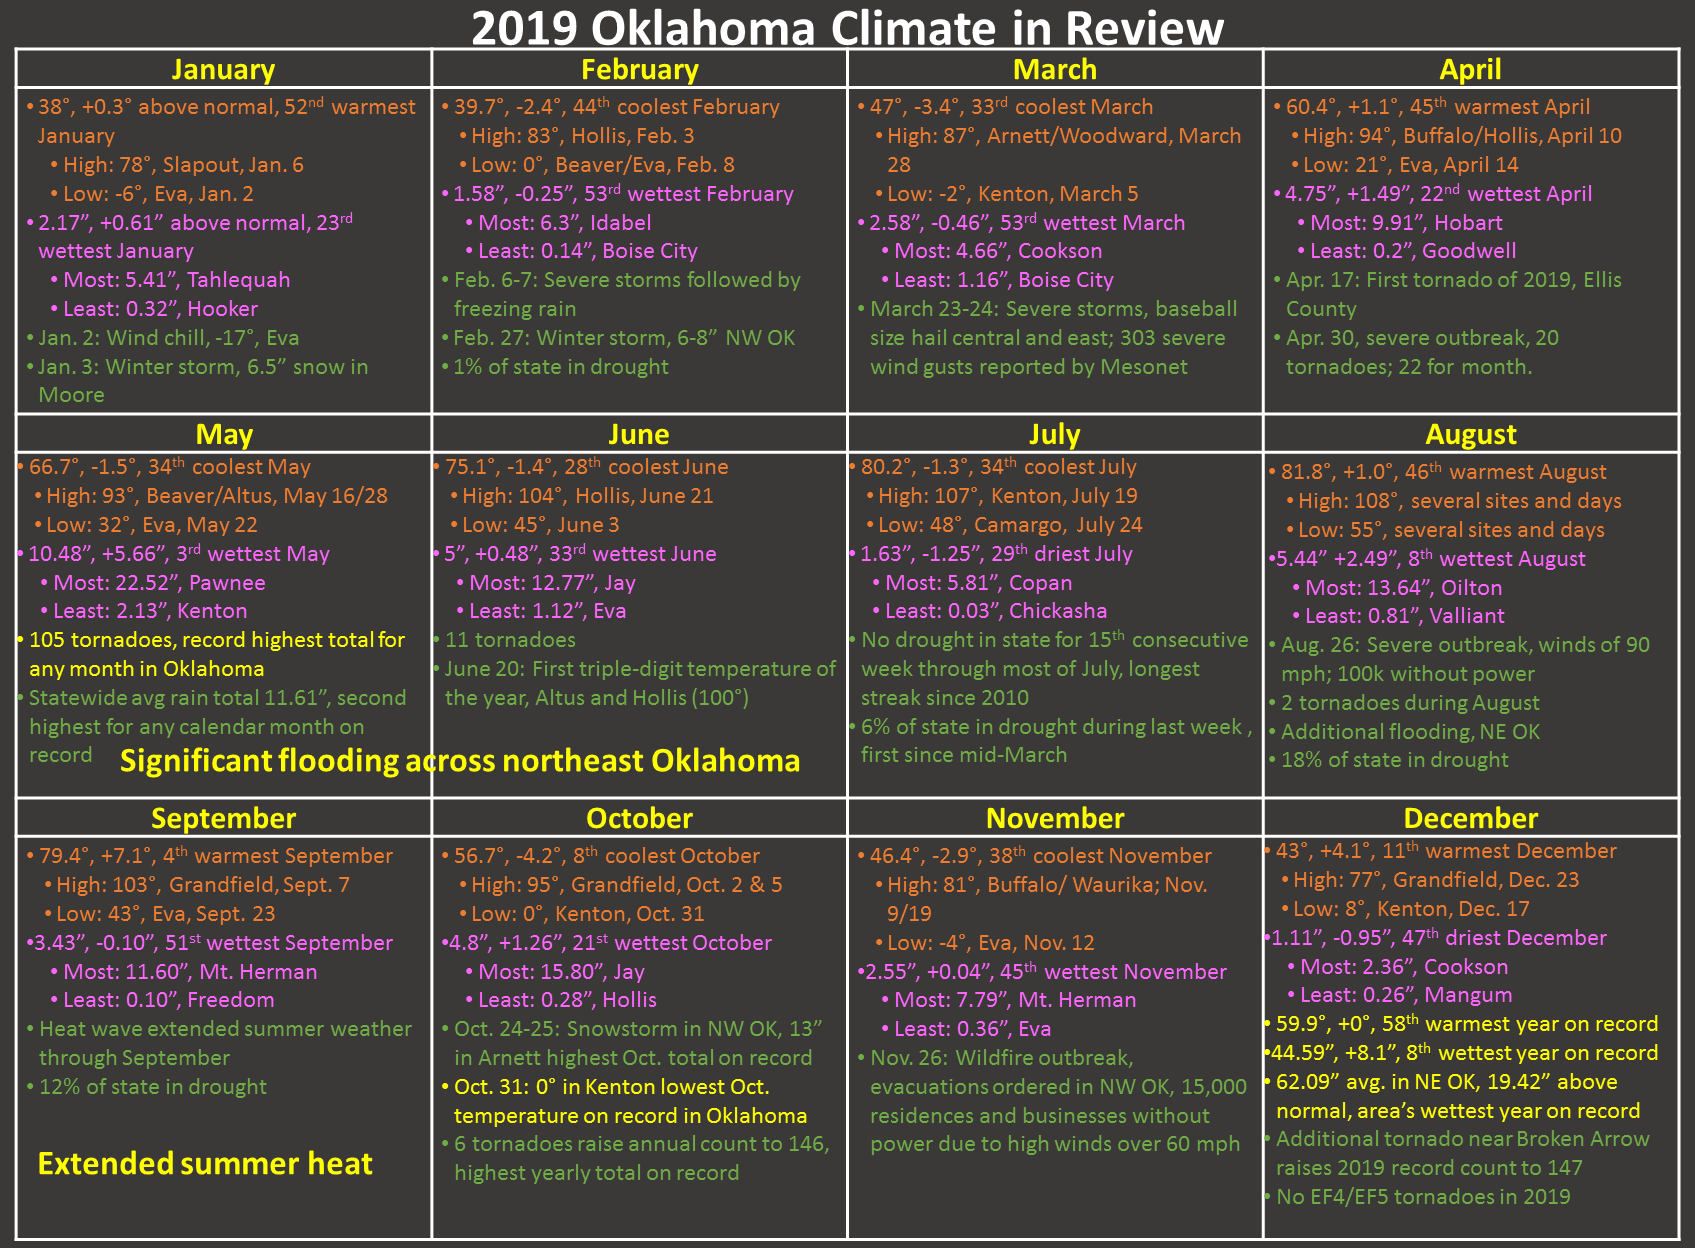 http://ticker.mesonet.org/archive/20200102/2019-climate-review.png